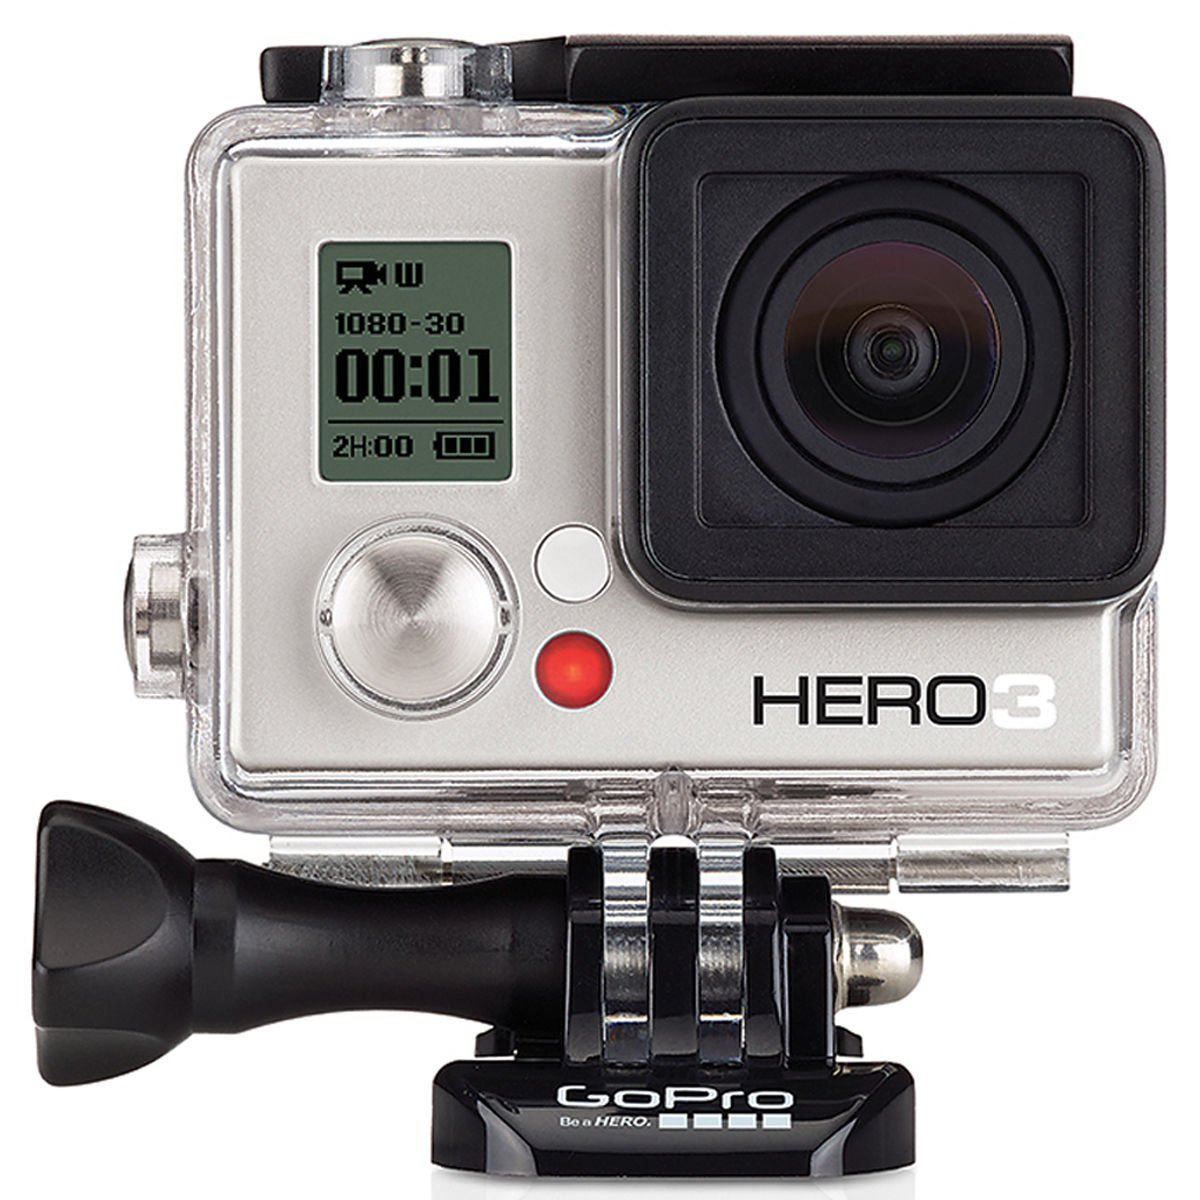 GoPro HERO3 White Edition Camera with 131